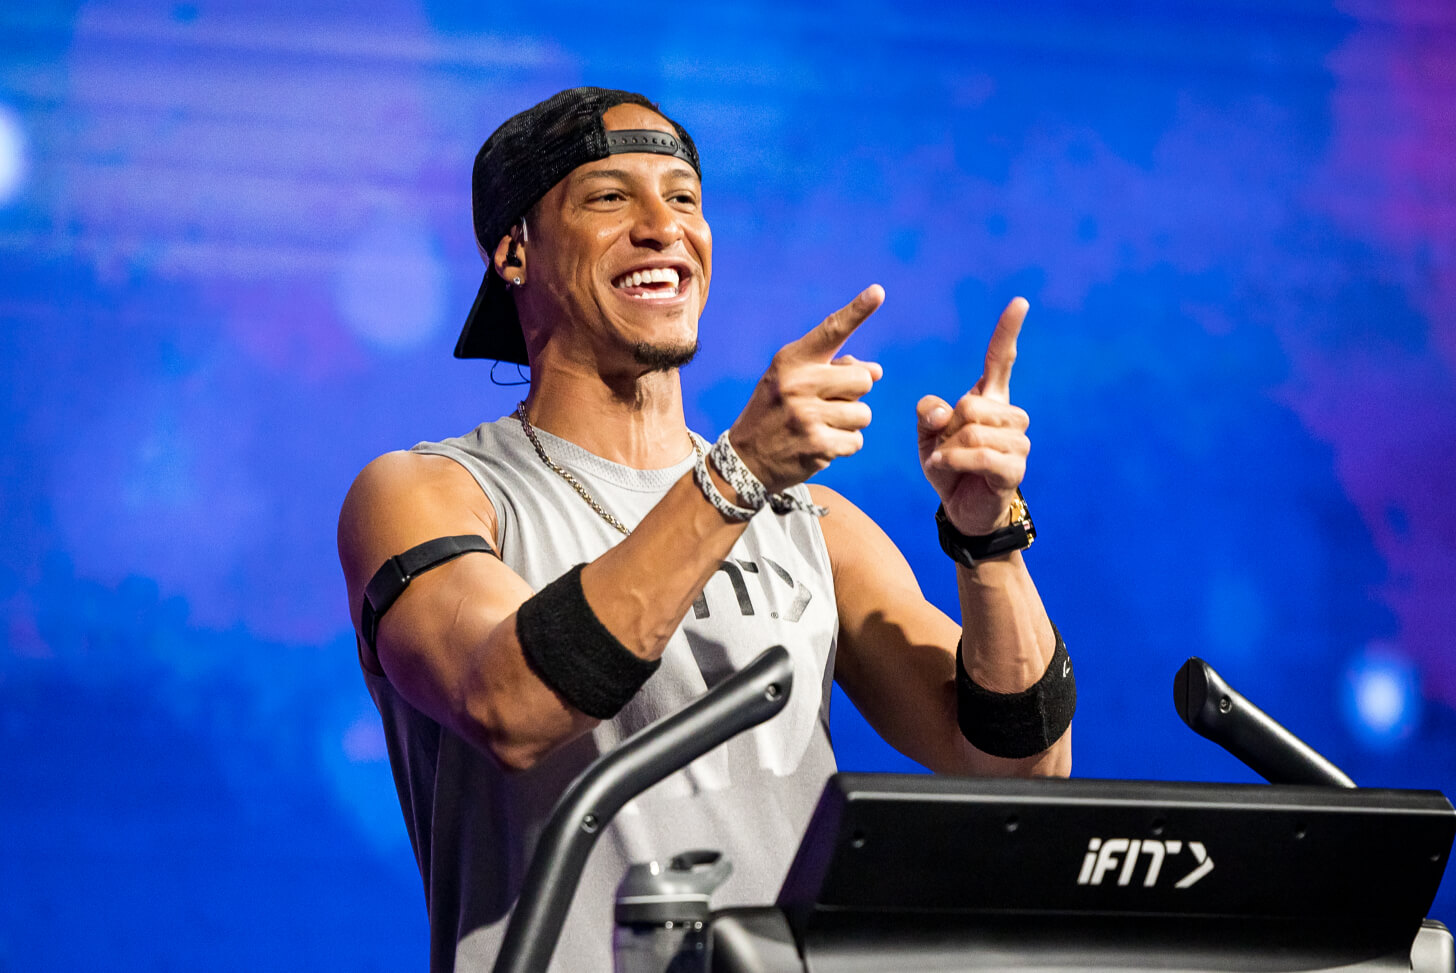 iFIT Trainer Jonnie Gale